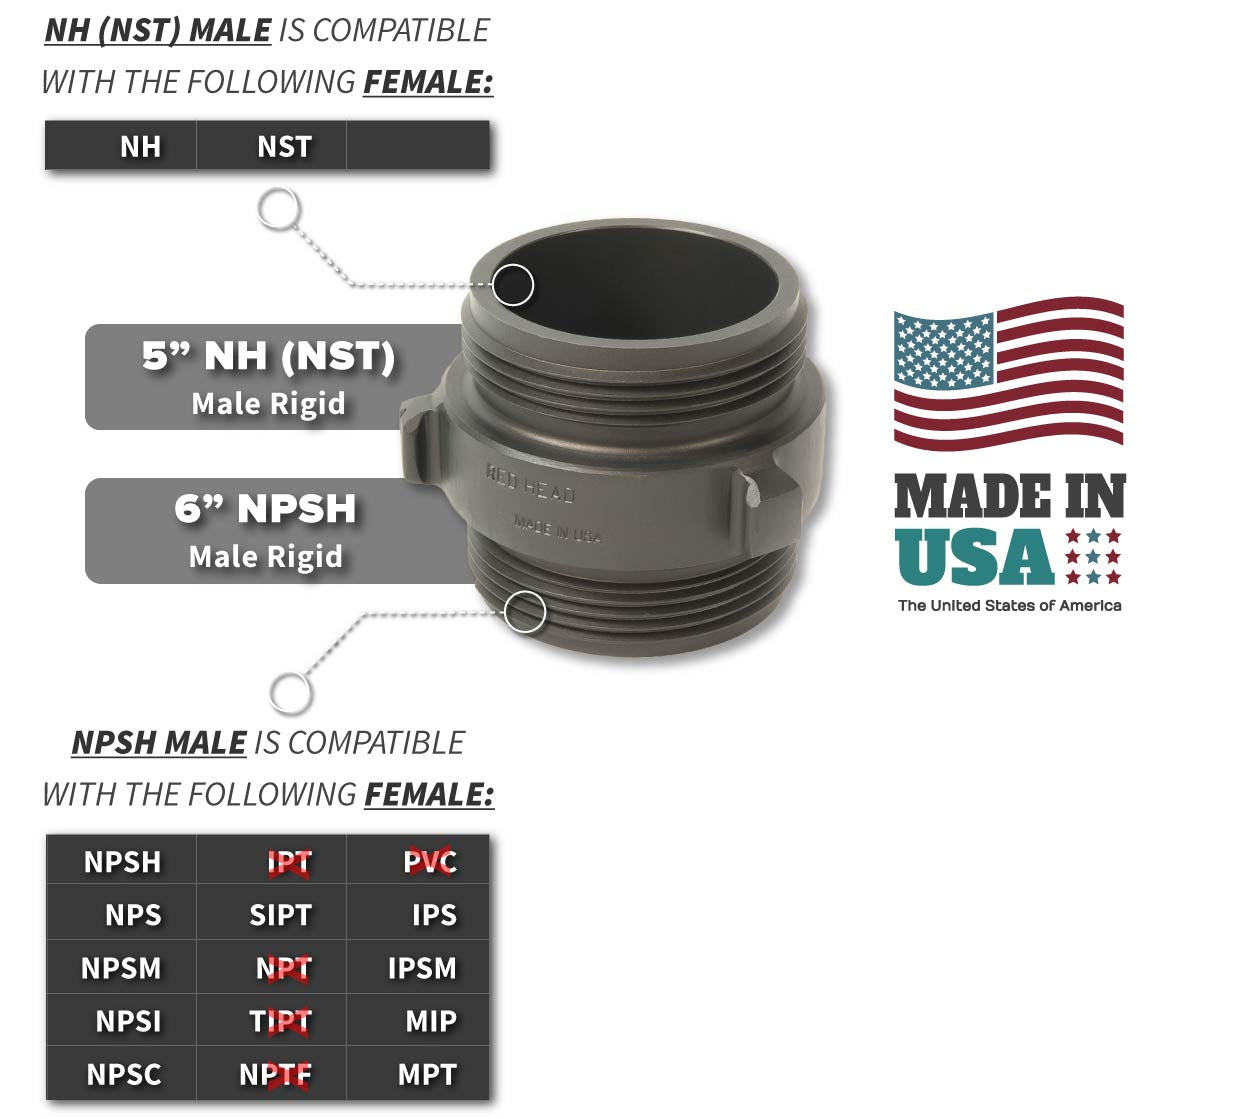 5 Inch NH-NST Male x 6 Inch NPSH Male Compatibility Thread Chart